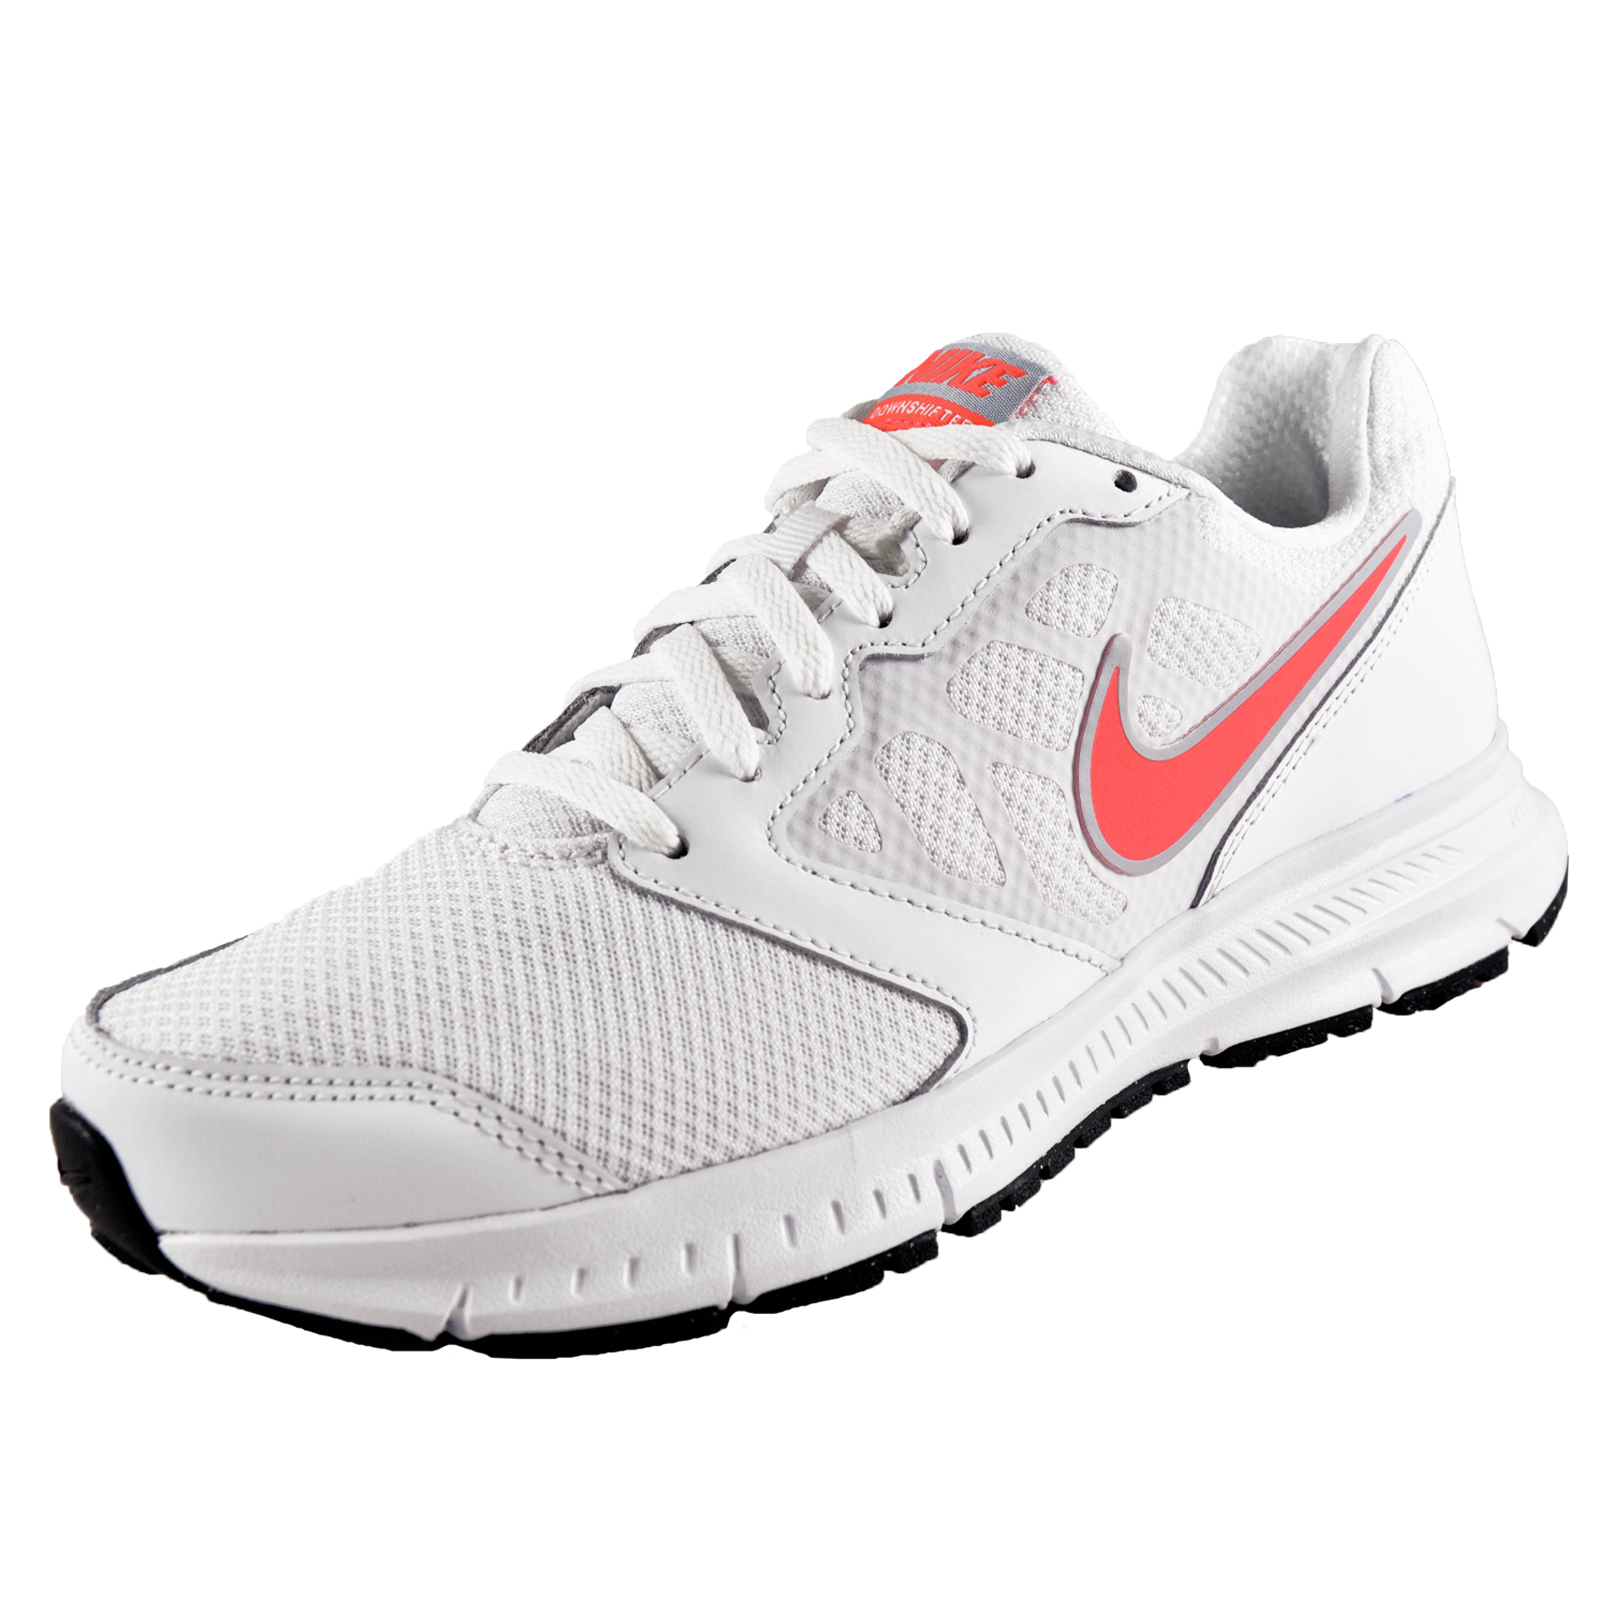 ... Downshifter 6  latest discount 1338f dc6d6 Images of Womens Nike  Fitness Trainers ... 177626d286